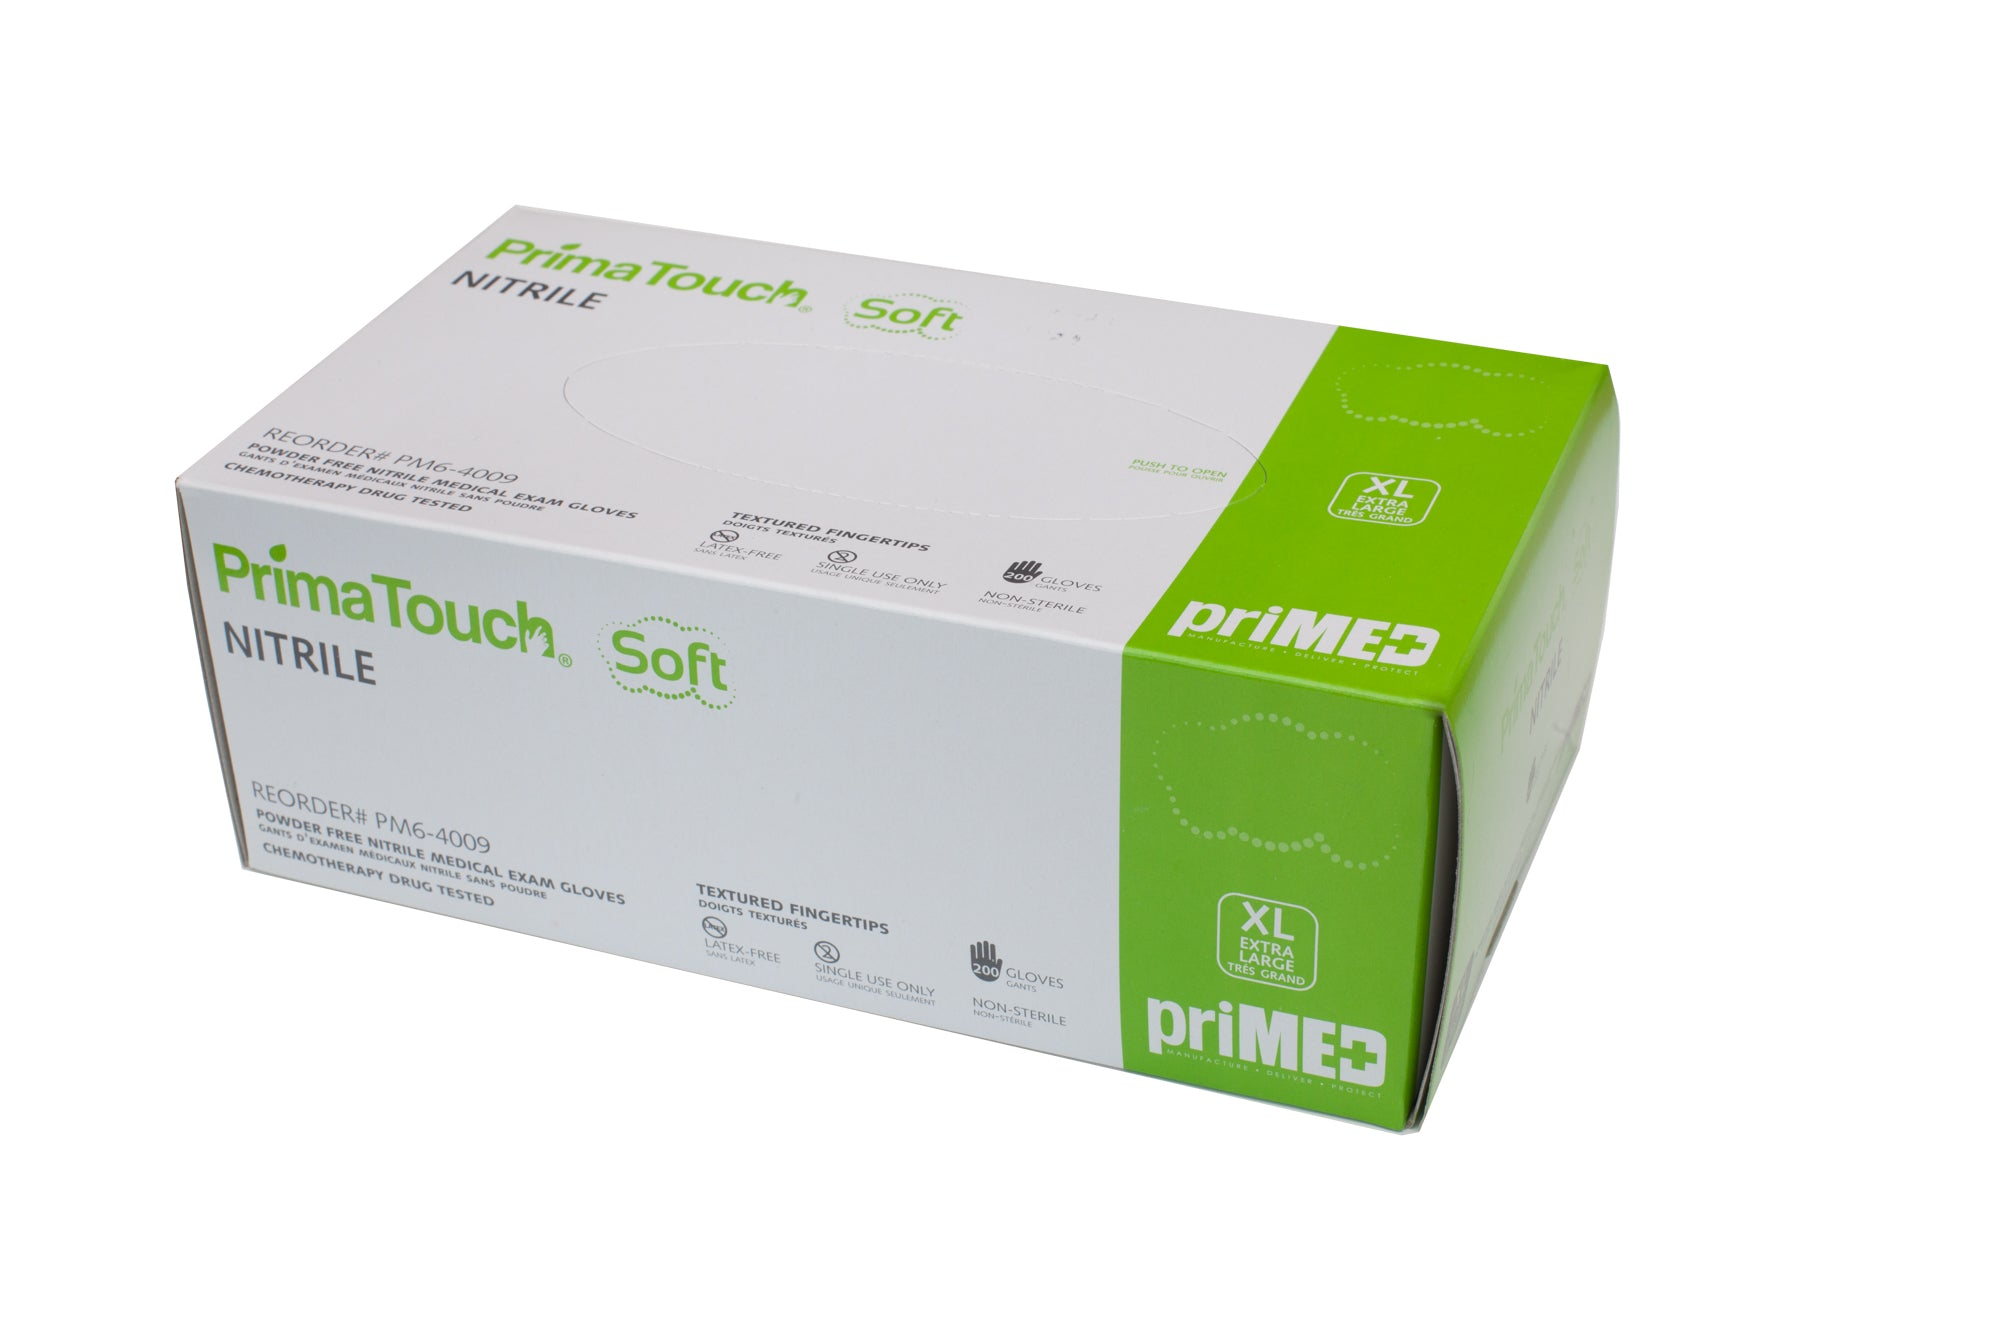 Prima Touch Soft PF XL Nitrile Exam Gloves 200/box.Overstock price drop.